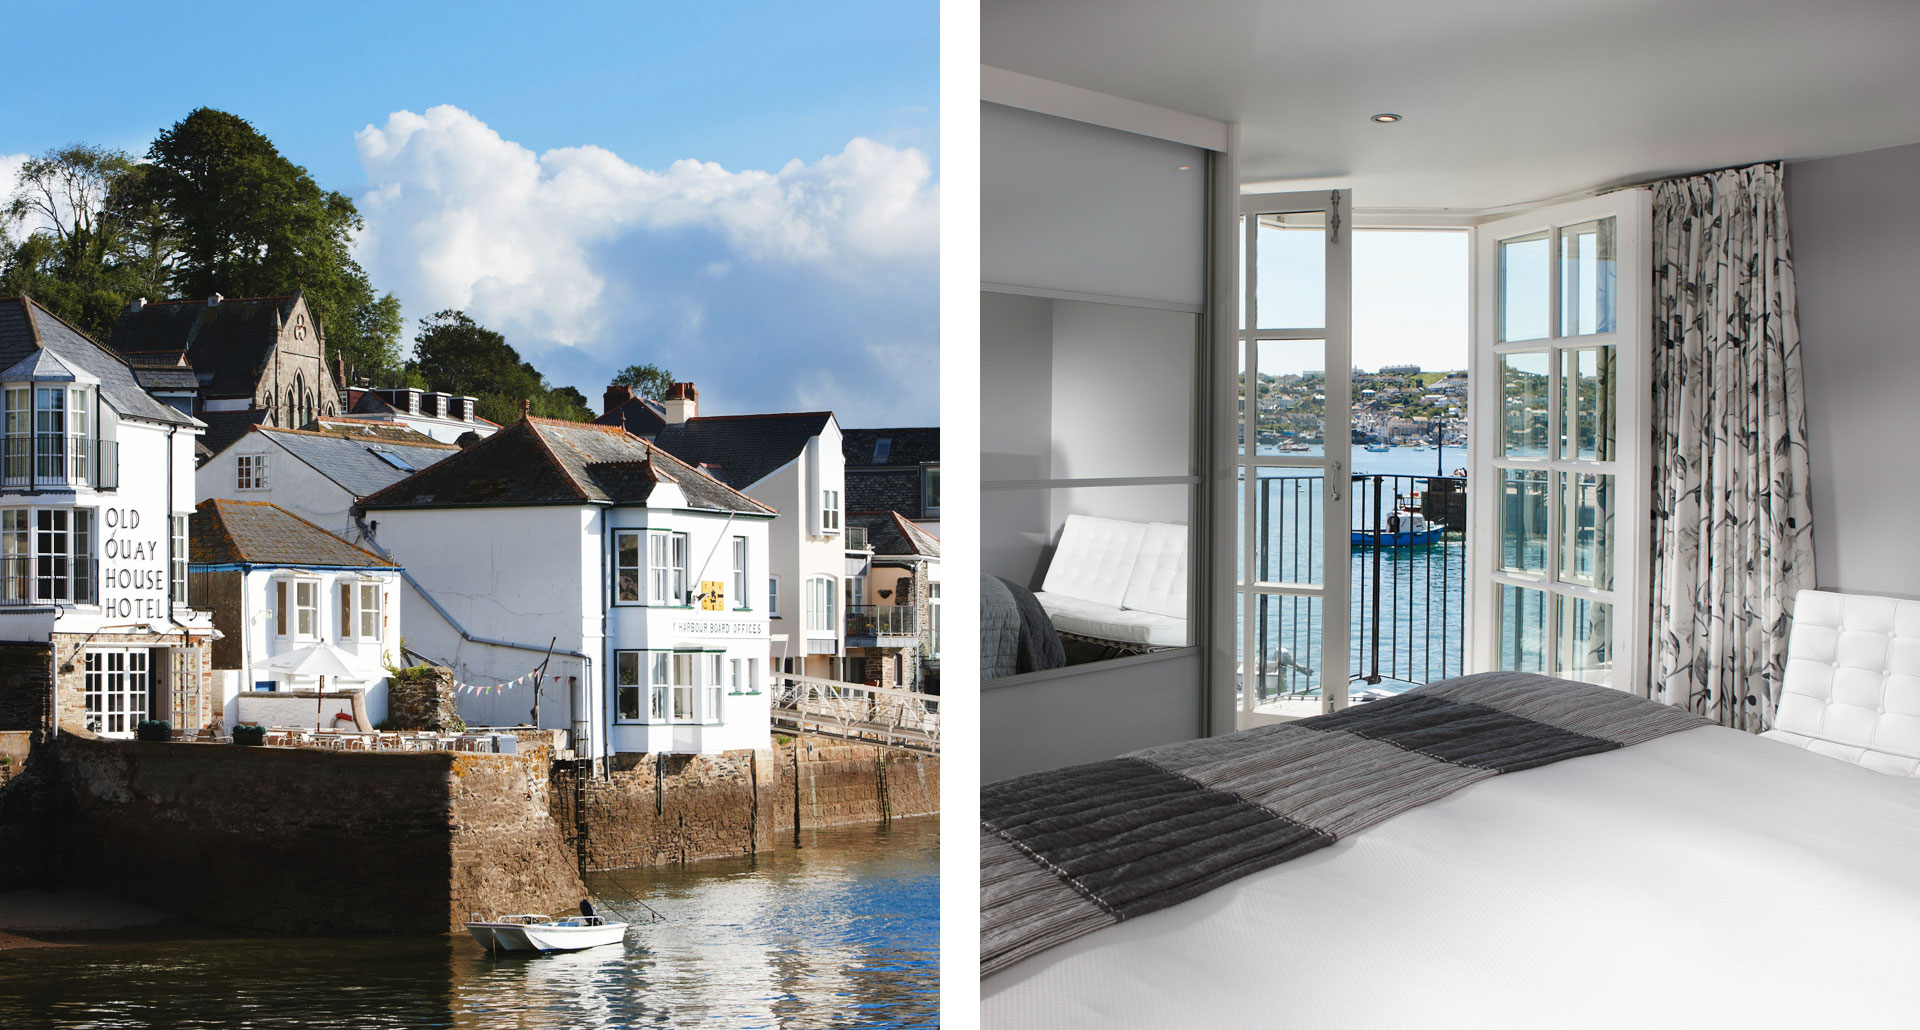 The Old Quay House - boutique hotel in Fowey